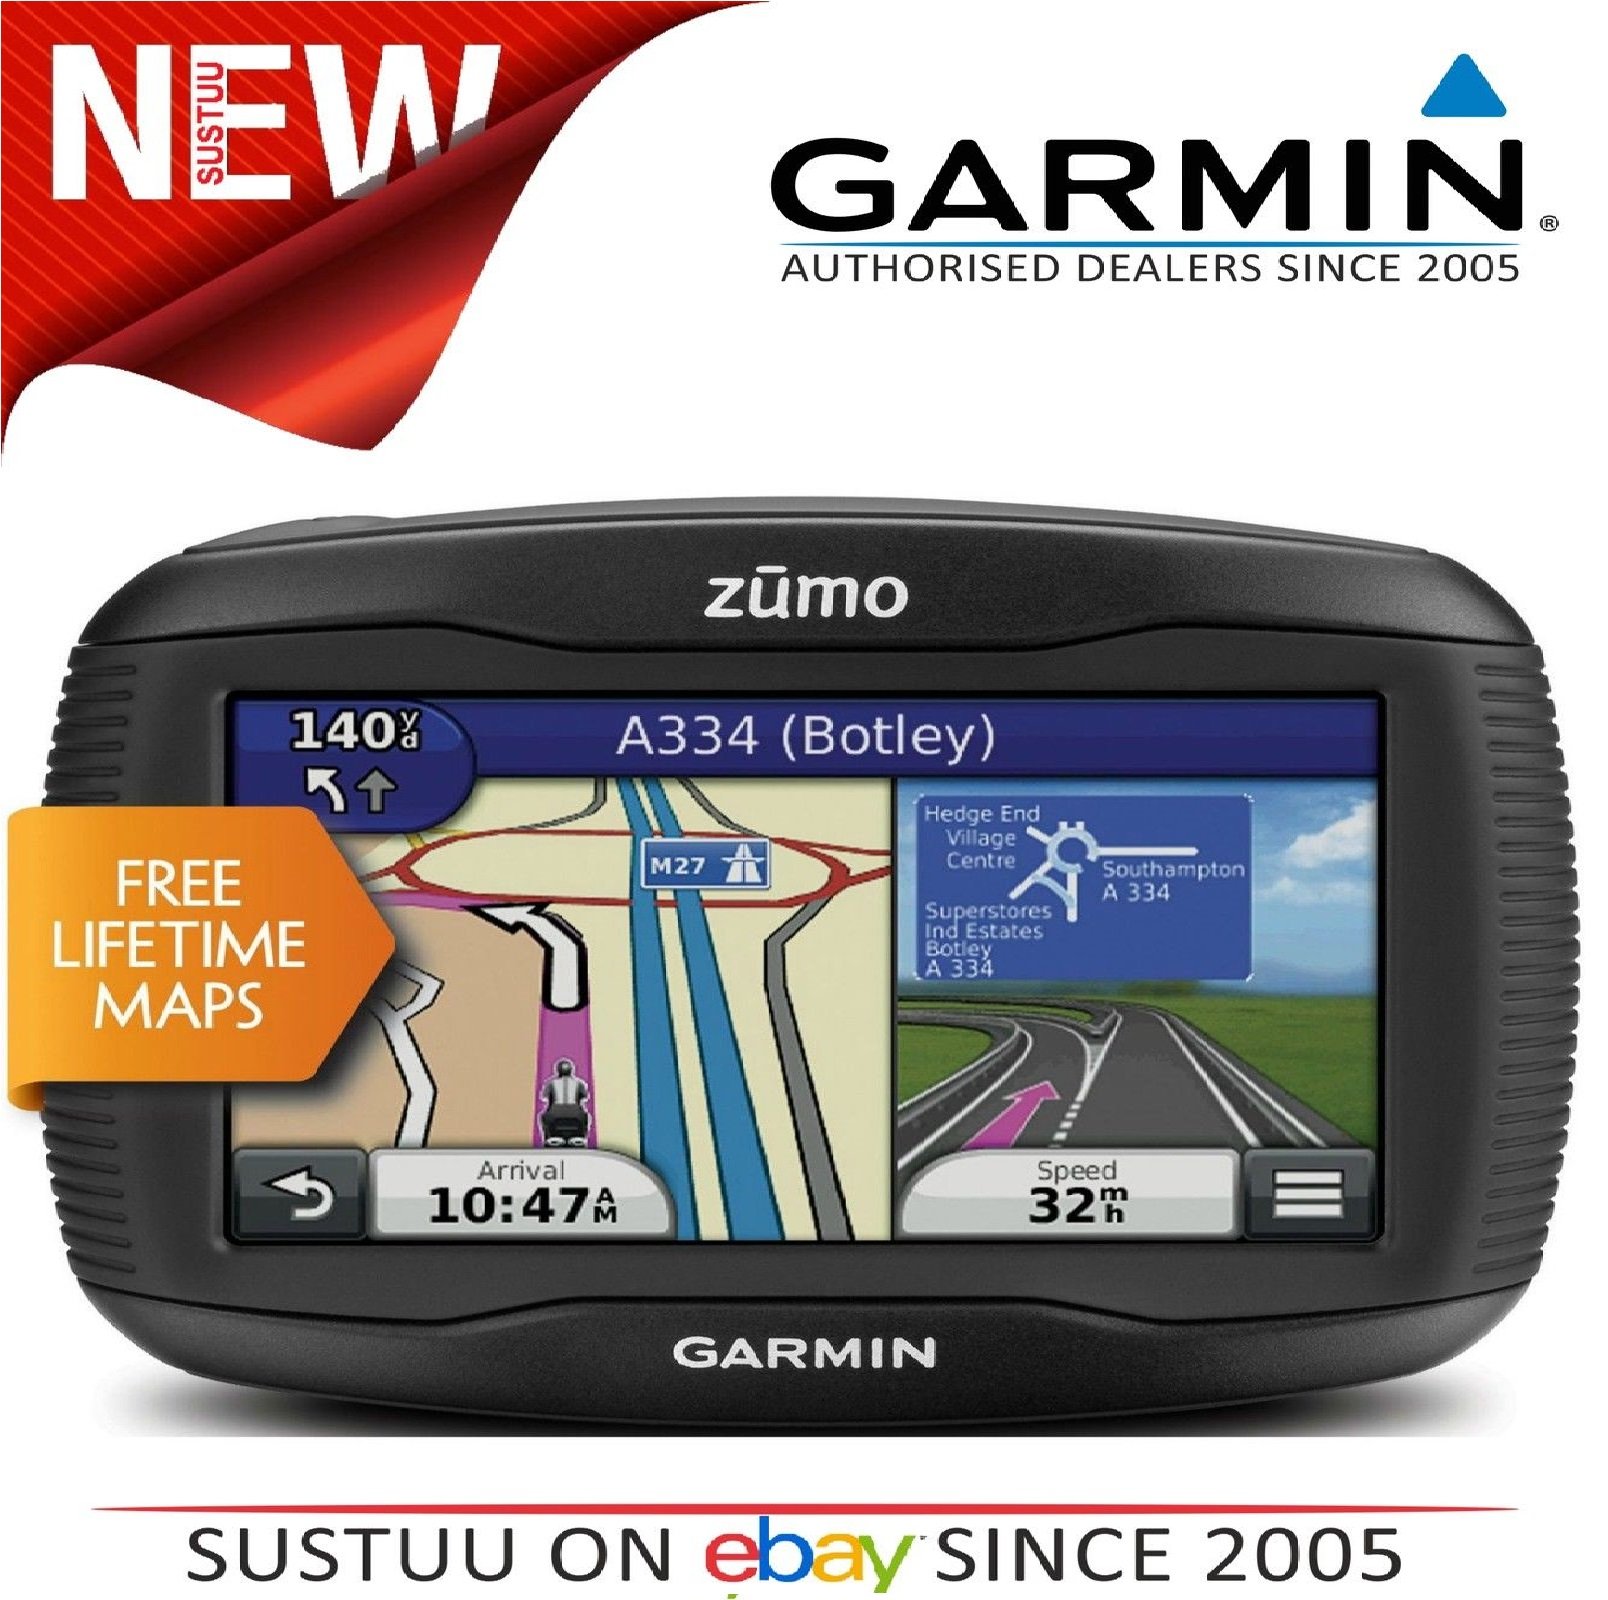 garmin zumo 345lm uk weurope gps satnav motorcycle bluetooth lifetime map update sustuu. Black Bedroom Furniture Sets. Home Design Ideas